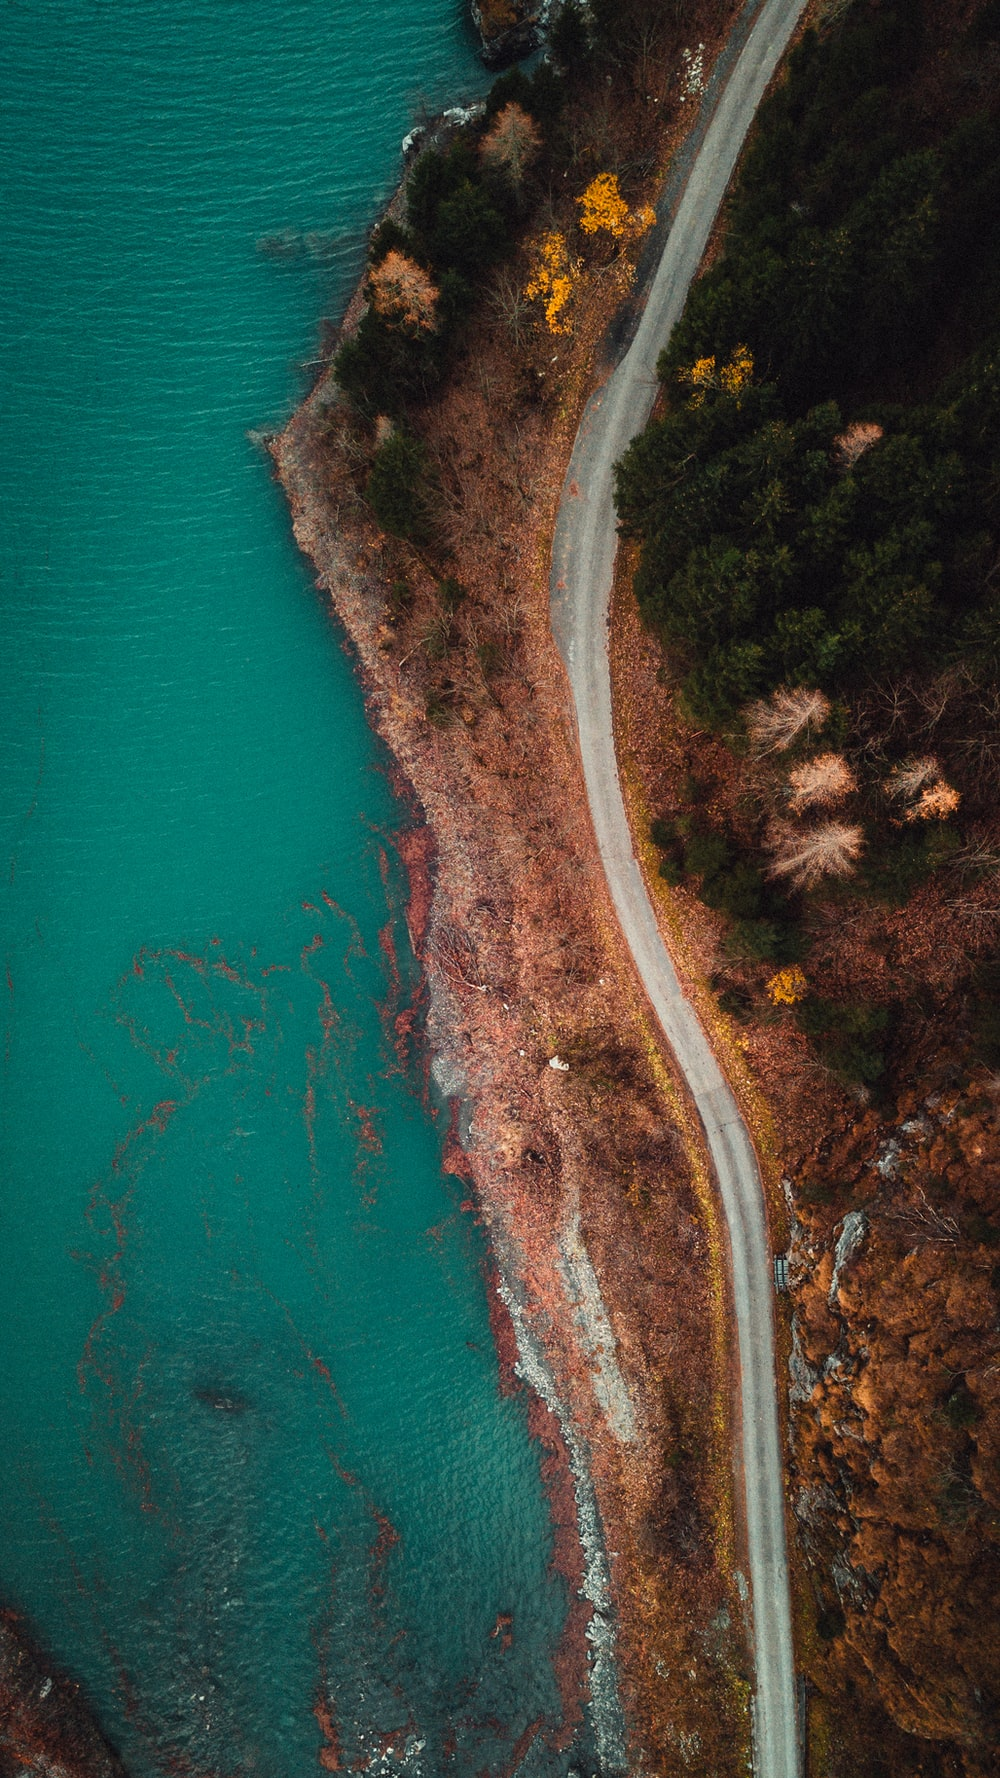 aerial photography of road near body of water